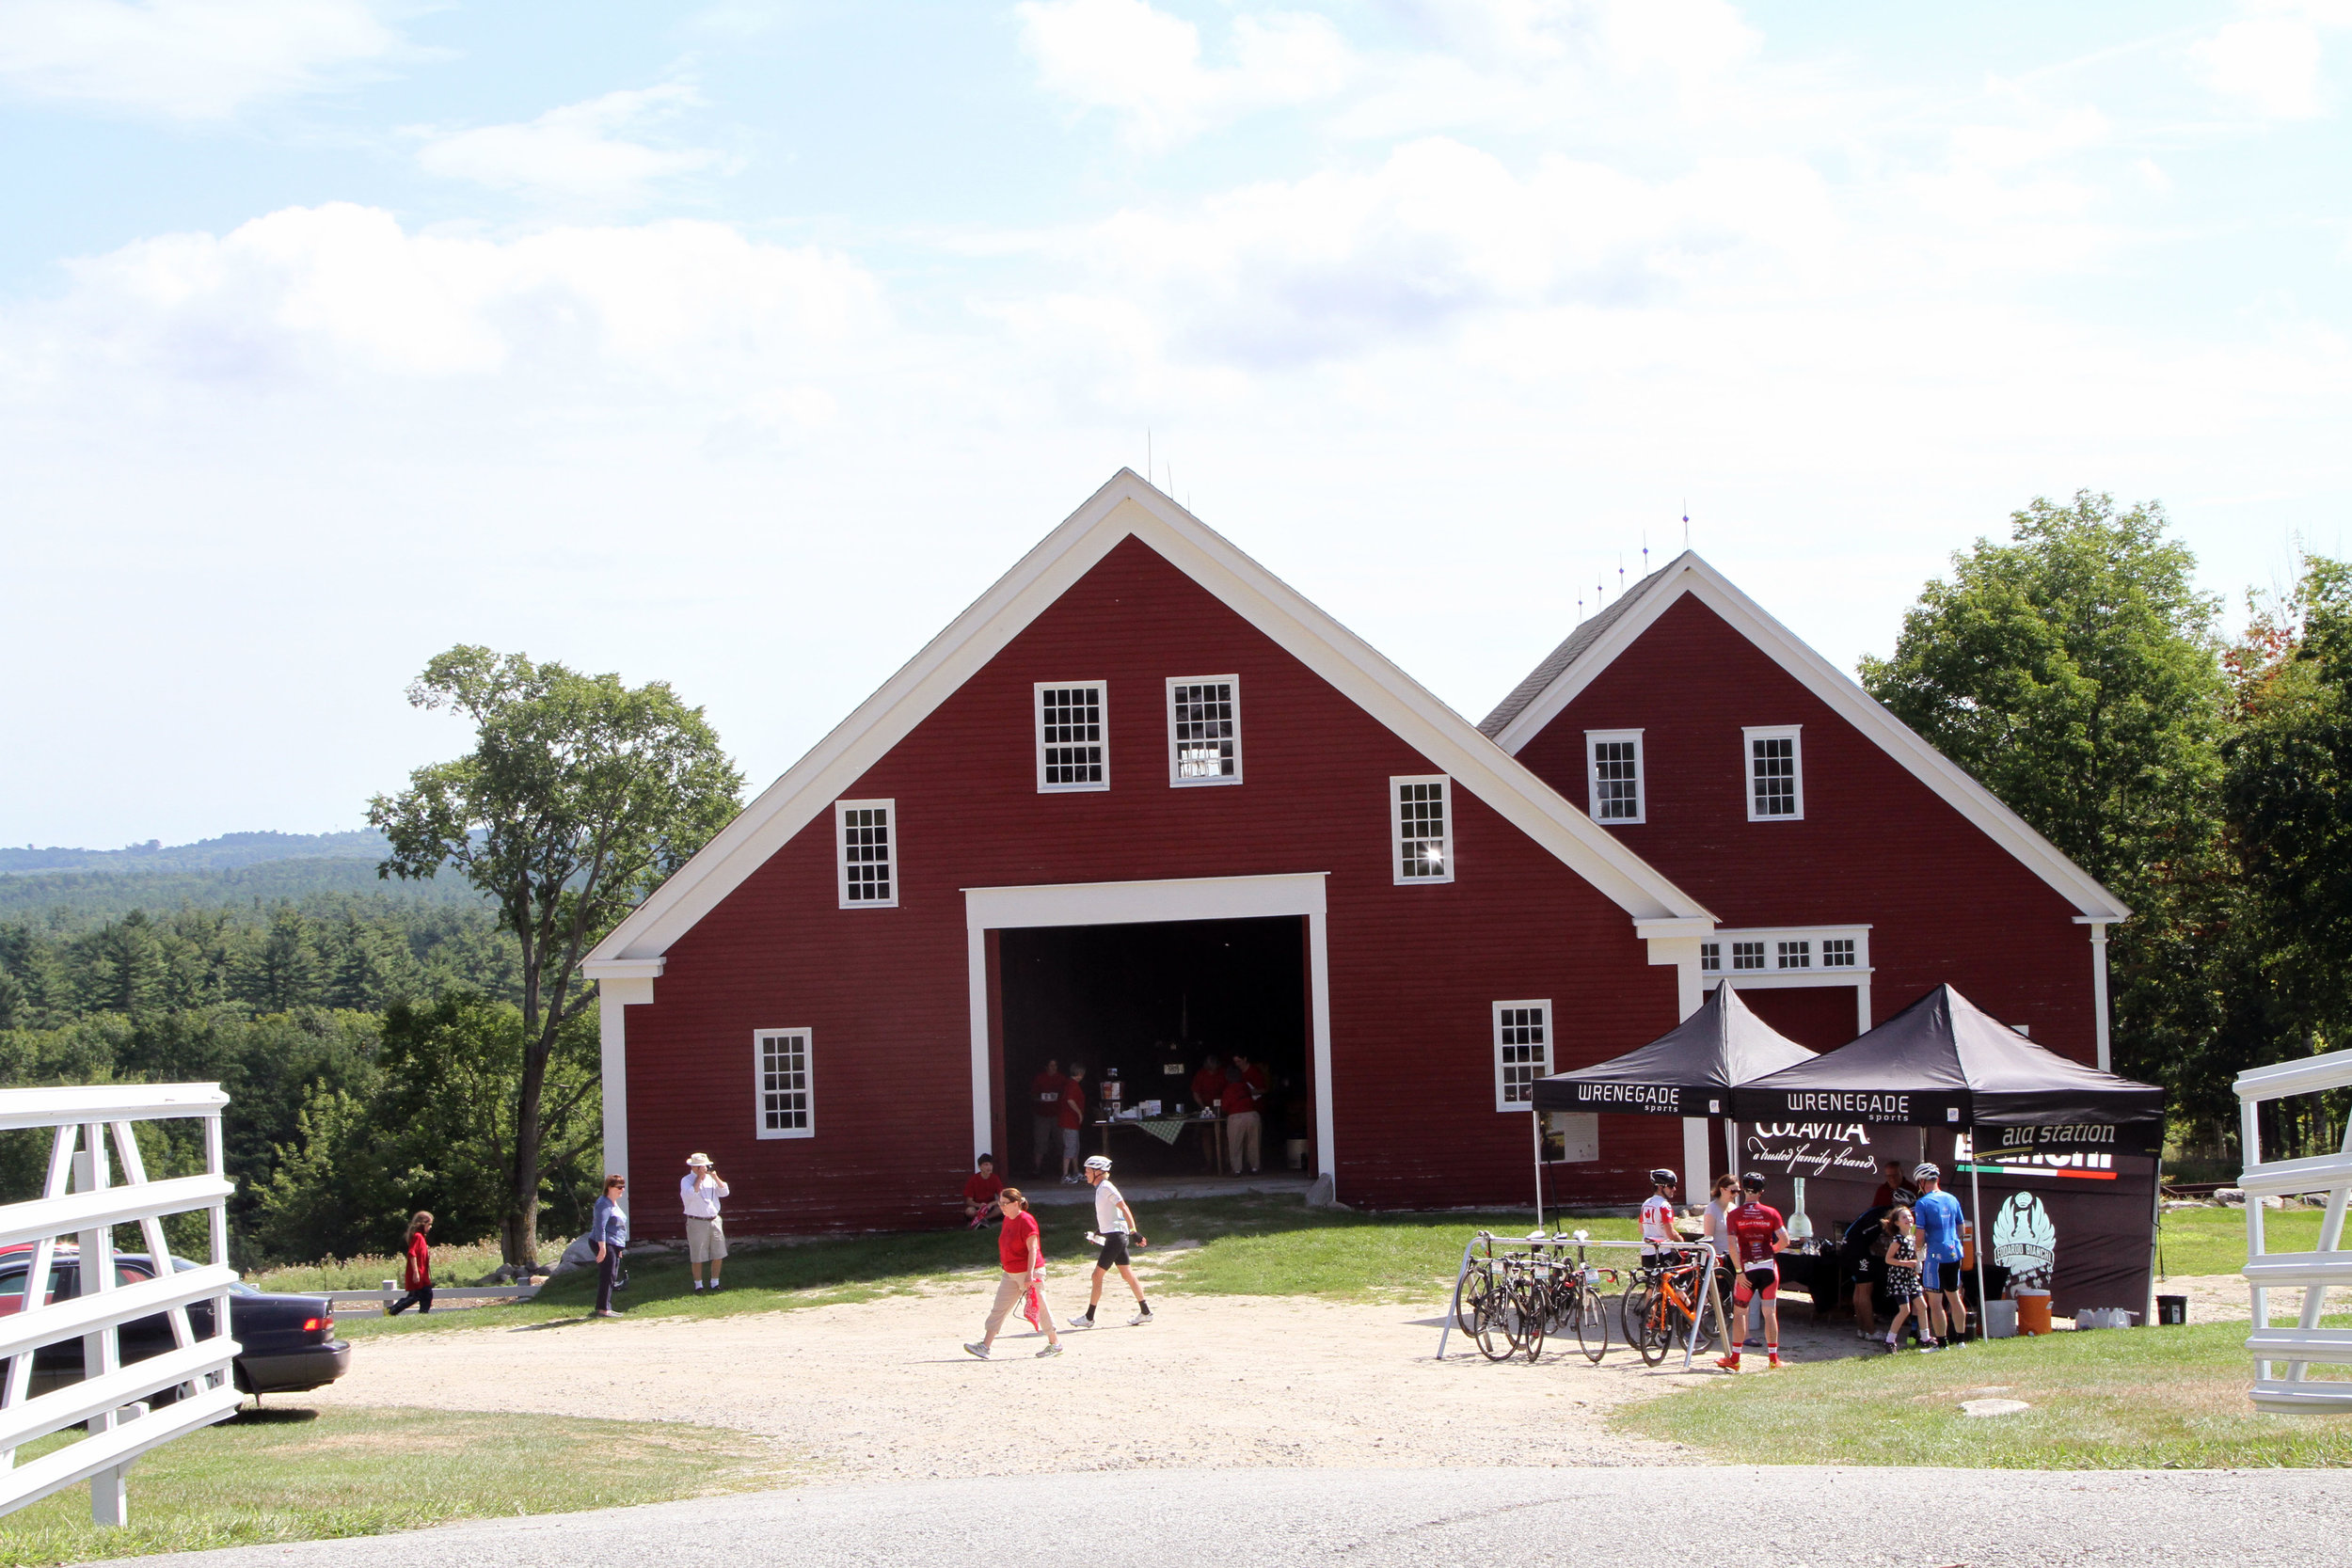 Gourmet aid station at Farm to Fork Fondo – Maine bicycle event at Sabbathday Lake Shaker Village in New Gloucester ME